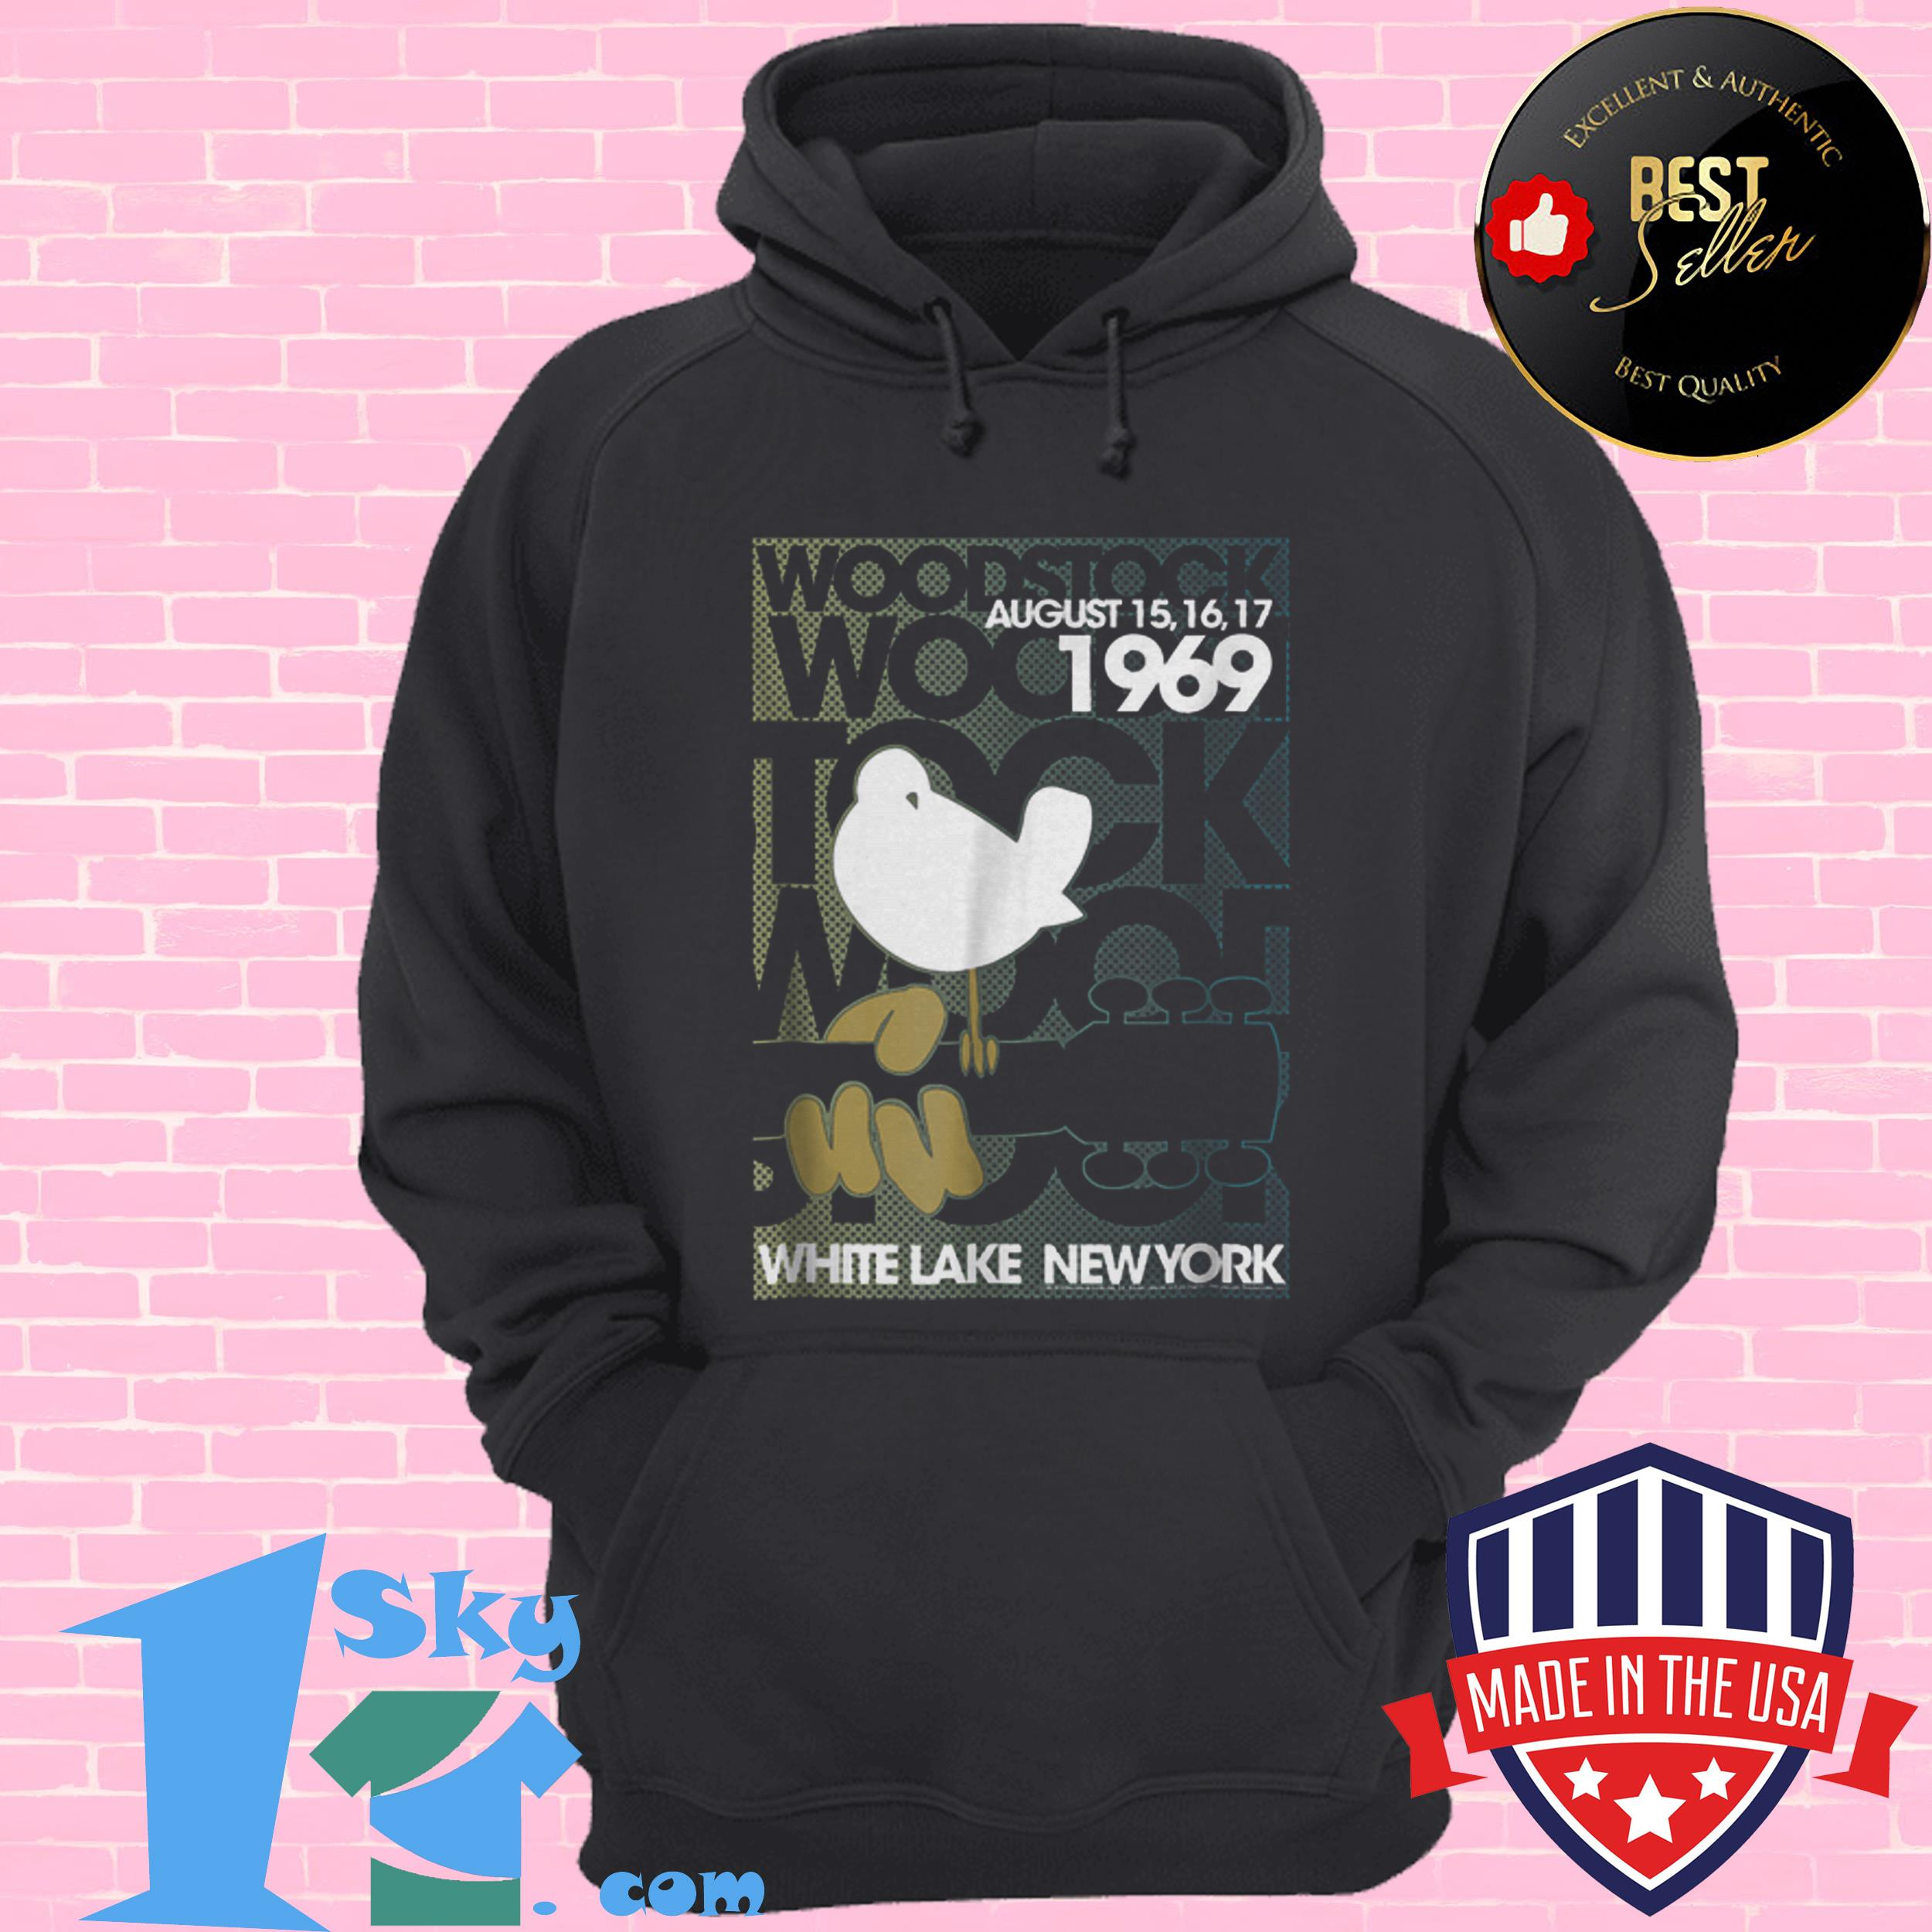 awesome woodstock august 1969 white lake new york hoodie - Awesome Woodstock August 1969 White Lake New York shirt